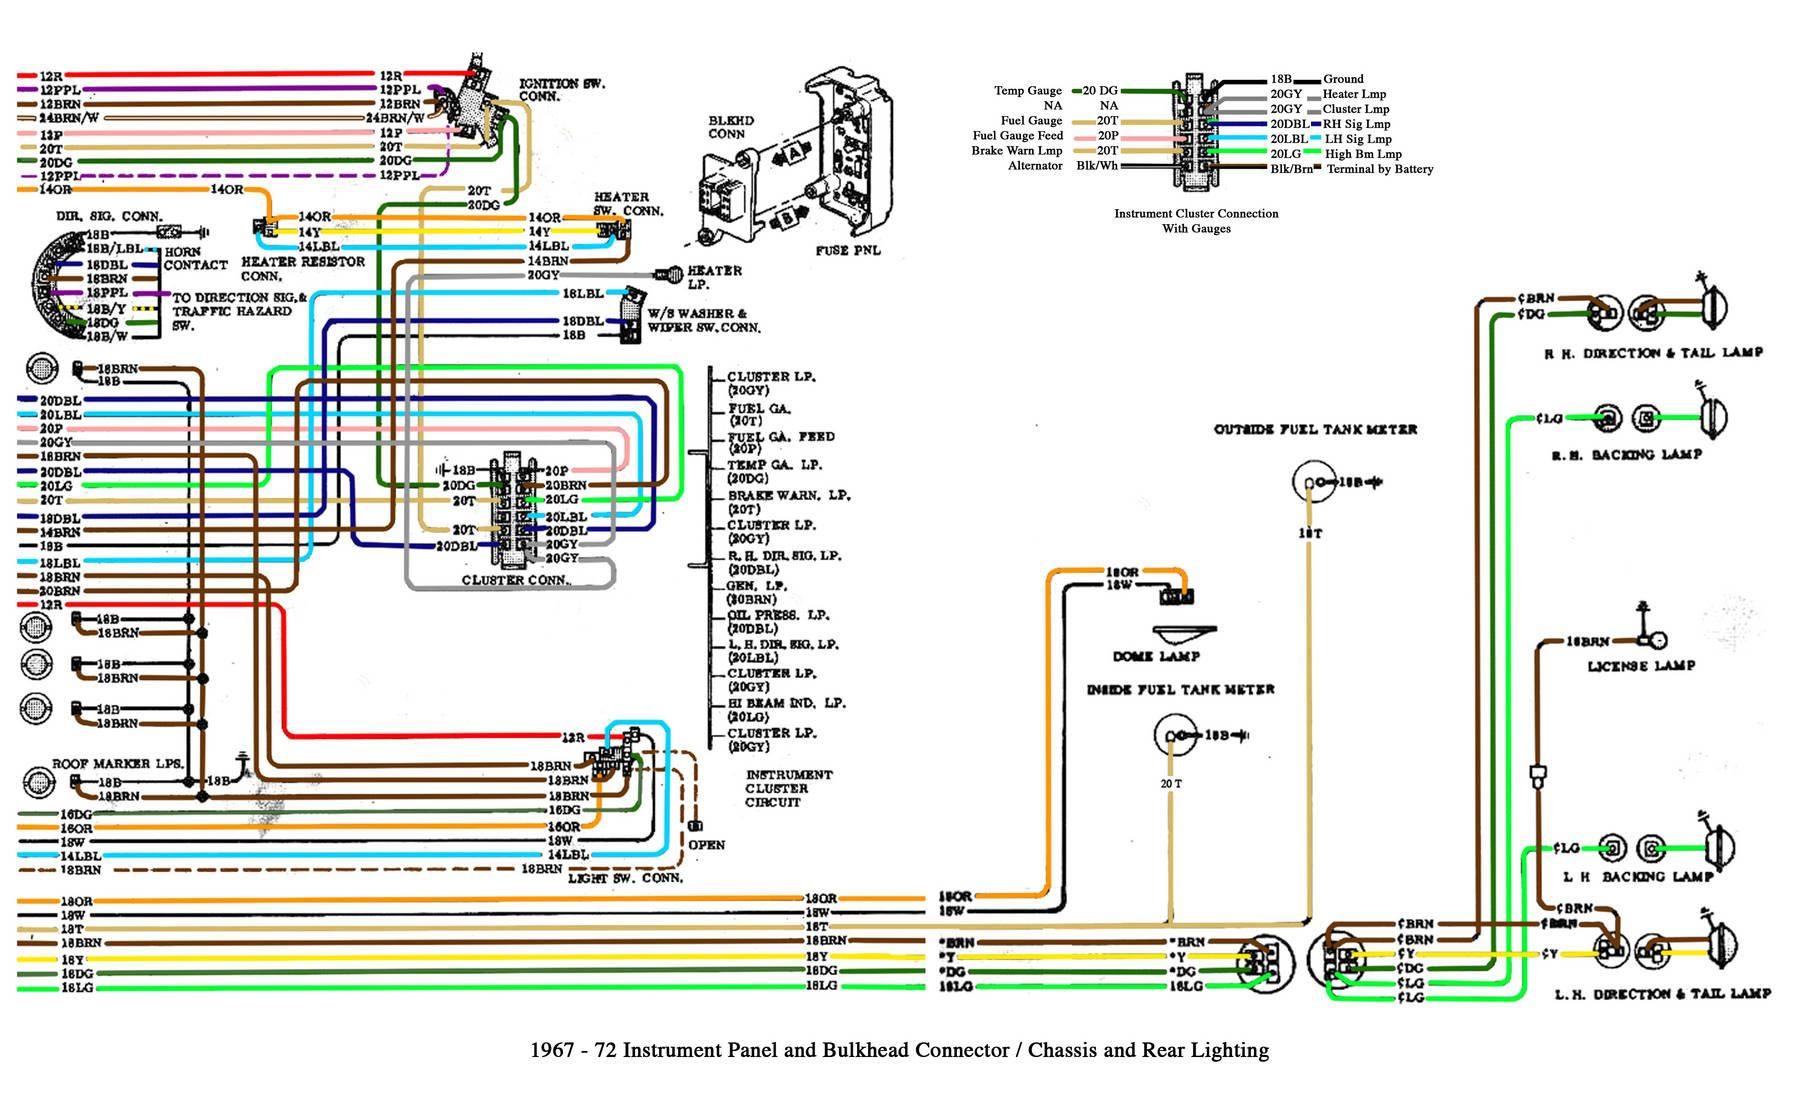 wiring diagram | Bryan's old truck | Pinterest | Gmc pickup trucks on dodge pickup headlights, 2001 dodge wiring diagram, ford thunderbird wiring diagram, dodge radio wiring diagram, dodge challenger wiring diagram, dodge engine wiring diagram, dodge starter relay wiring diagram, dodge pickup suspension, dodge magnum wiring diagram, dodge rv wiring diagram, dodge viper wiring diagram, ford aerostar wiring diagram, dodge ram wiring diagram, pontiac fiero wiring diagram, oldsmobile cutlass wiring diagram, dodge pickup wiper motor, 2000 dodge wiring diagram, dodge omni wiring diagram, dodge aries wiring diagram, cadillac eldorado wiring diagram,